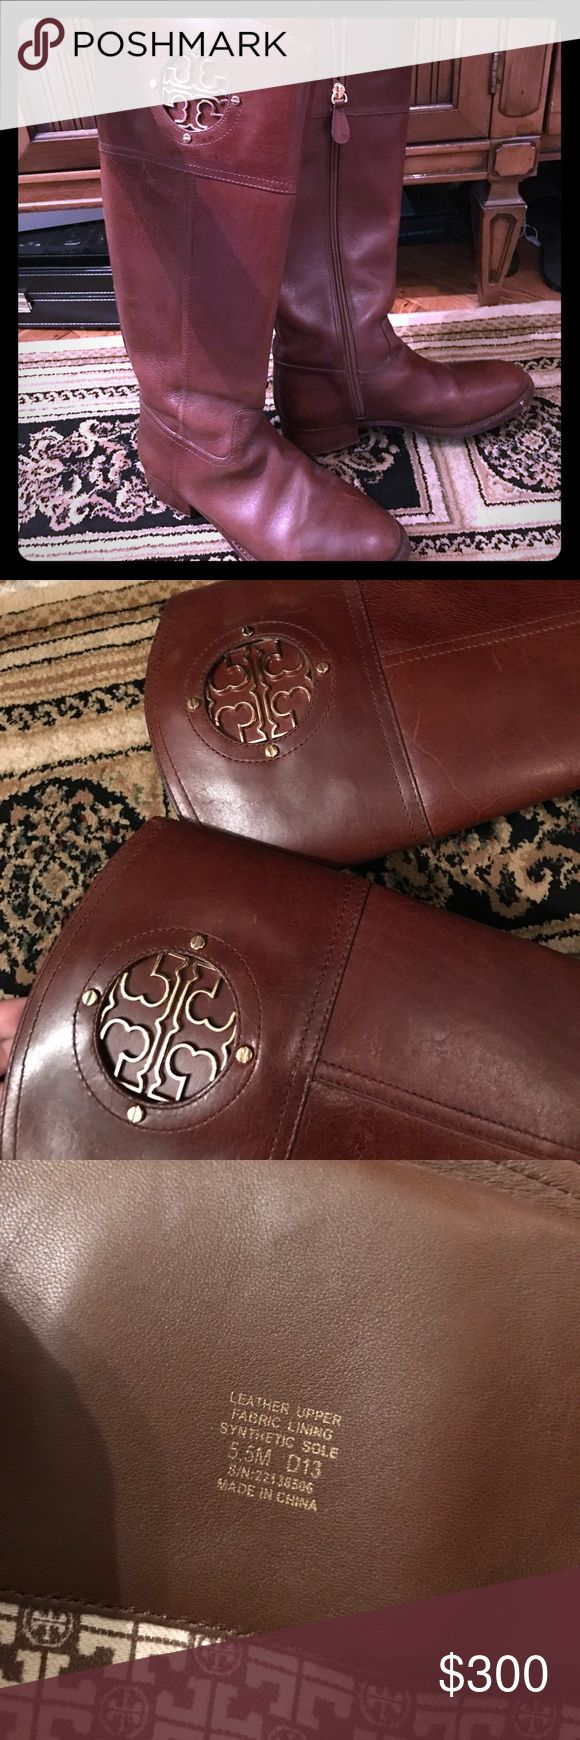 Tory Burch Boots Tory Burch signature brown leather equestrian boots (sold out online). Gently worn. Very little signs of wear. Size 5.5. Make me an offer! No trades. Tory Burch Shoes Over the Knee Boots